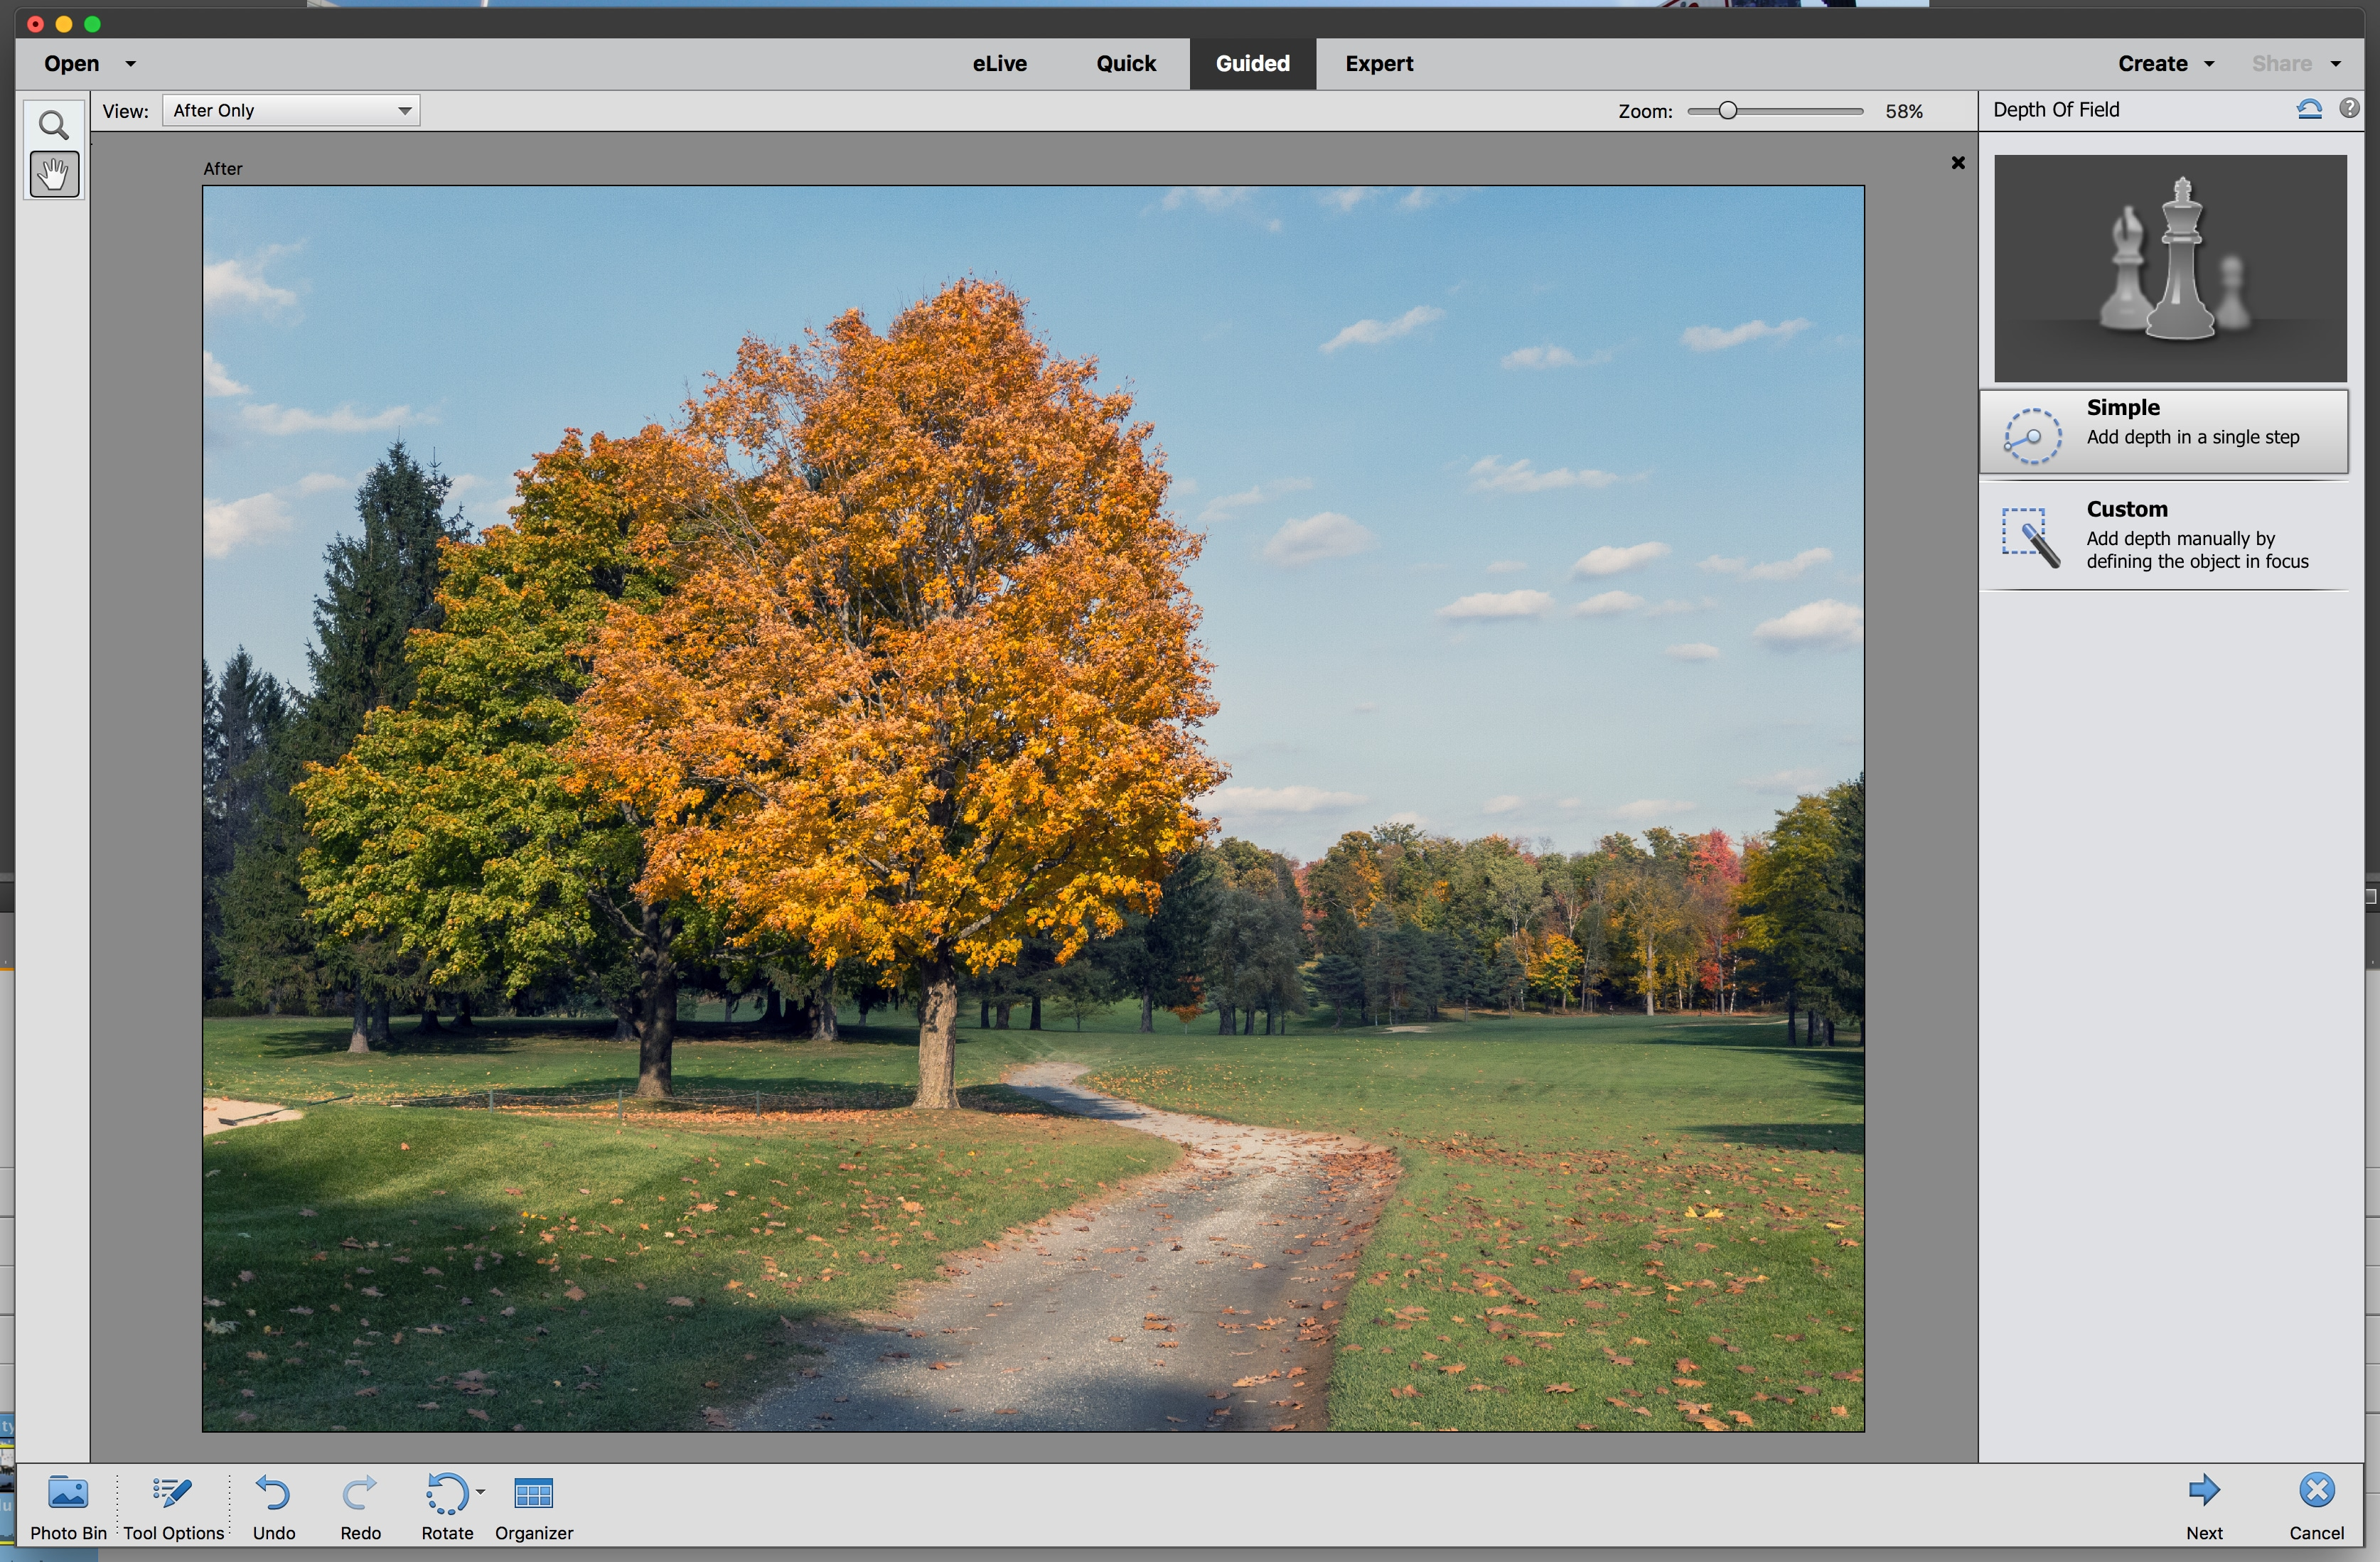 depth-of-field-guided-edit-1